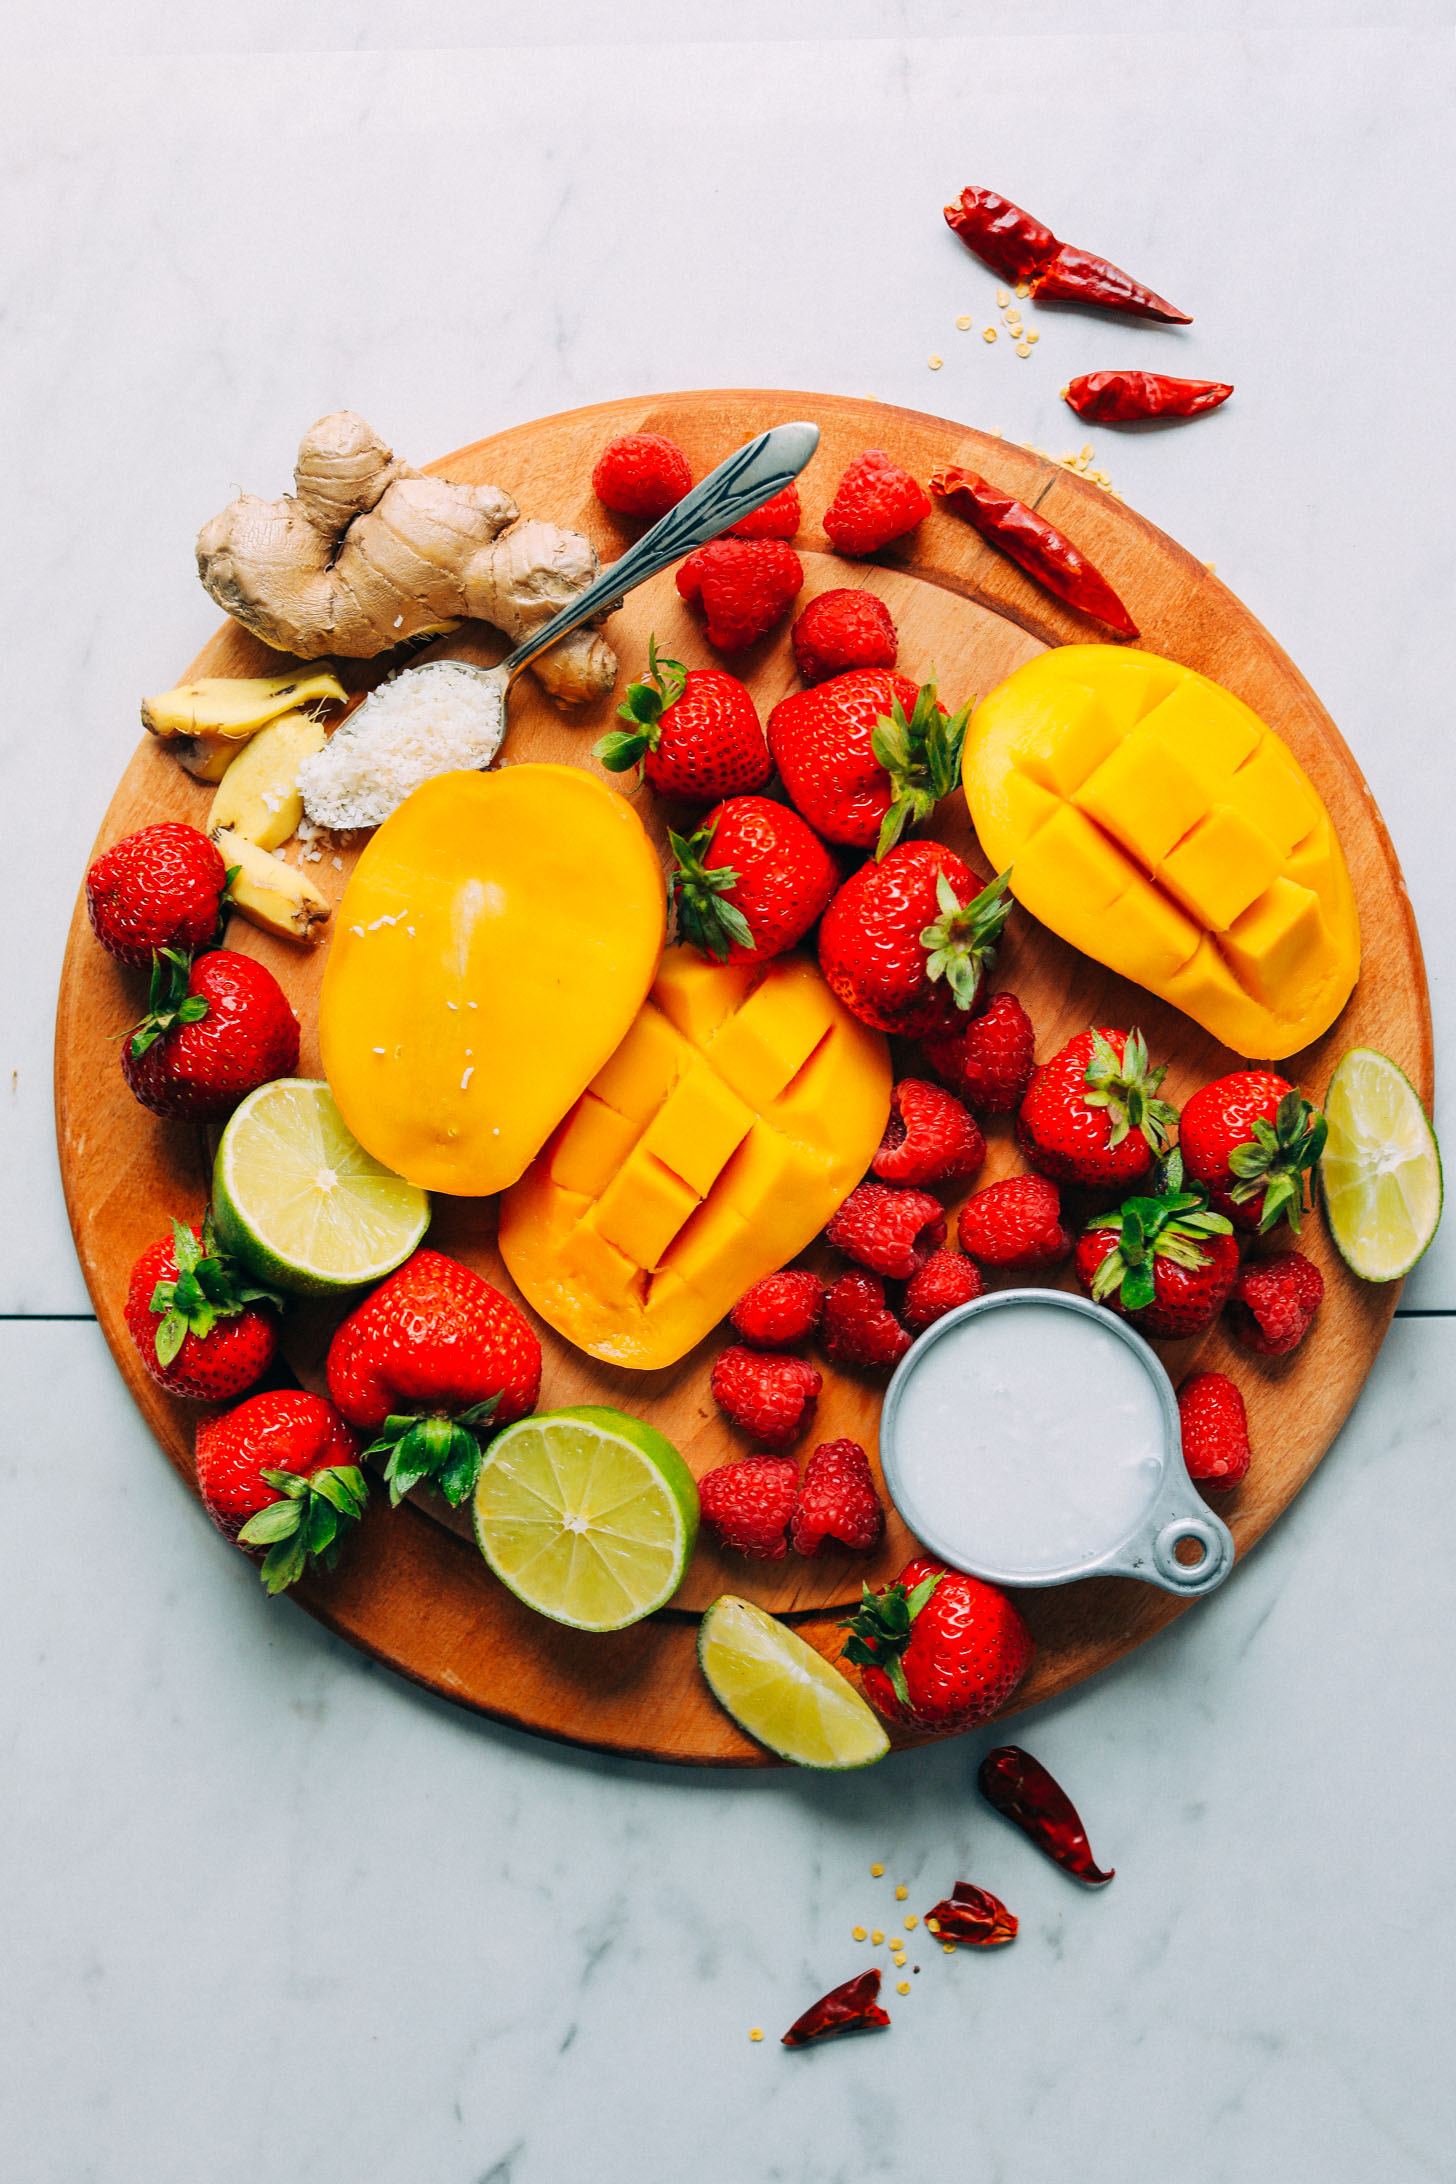 Wood cutting board with fresh fruit for making a vegan Gingery Mango & Berry Smoothie